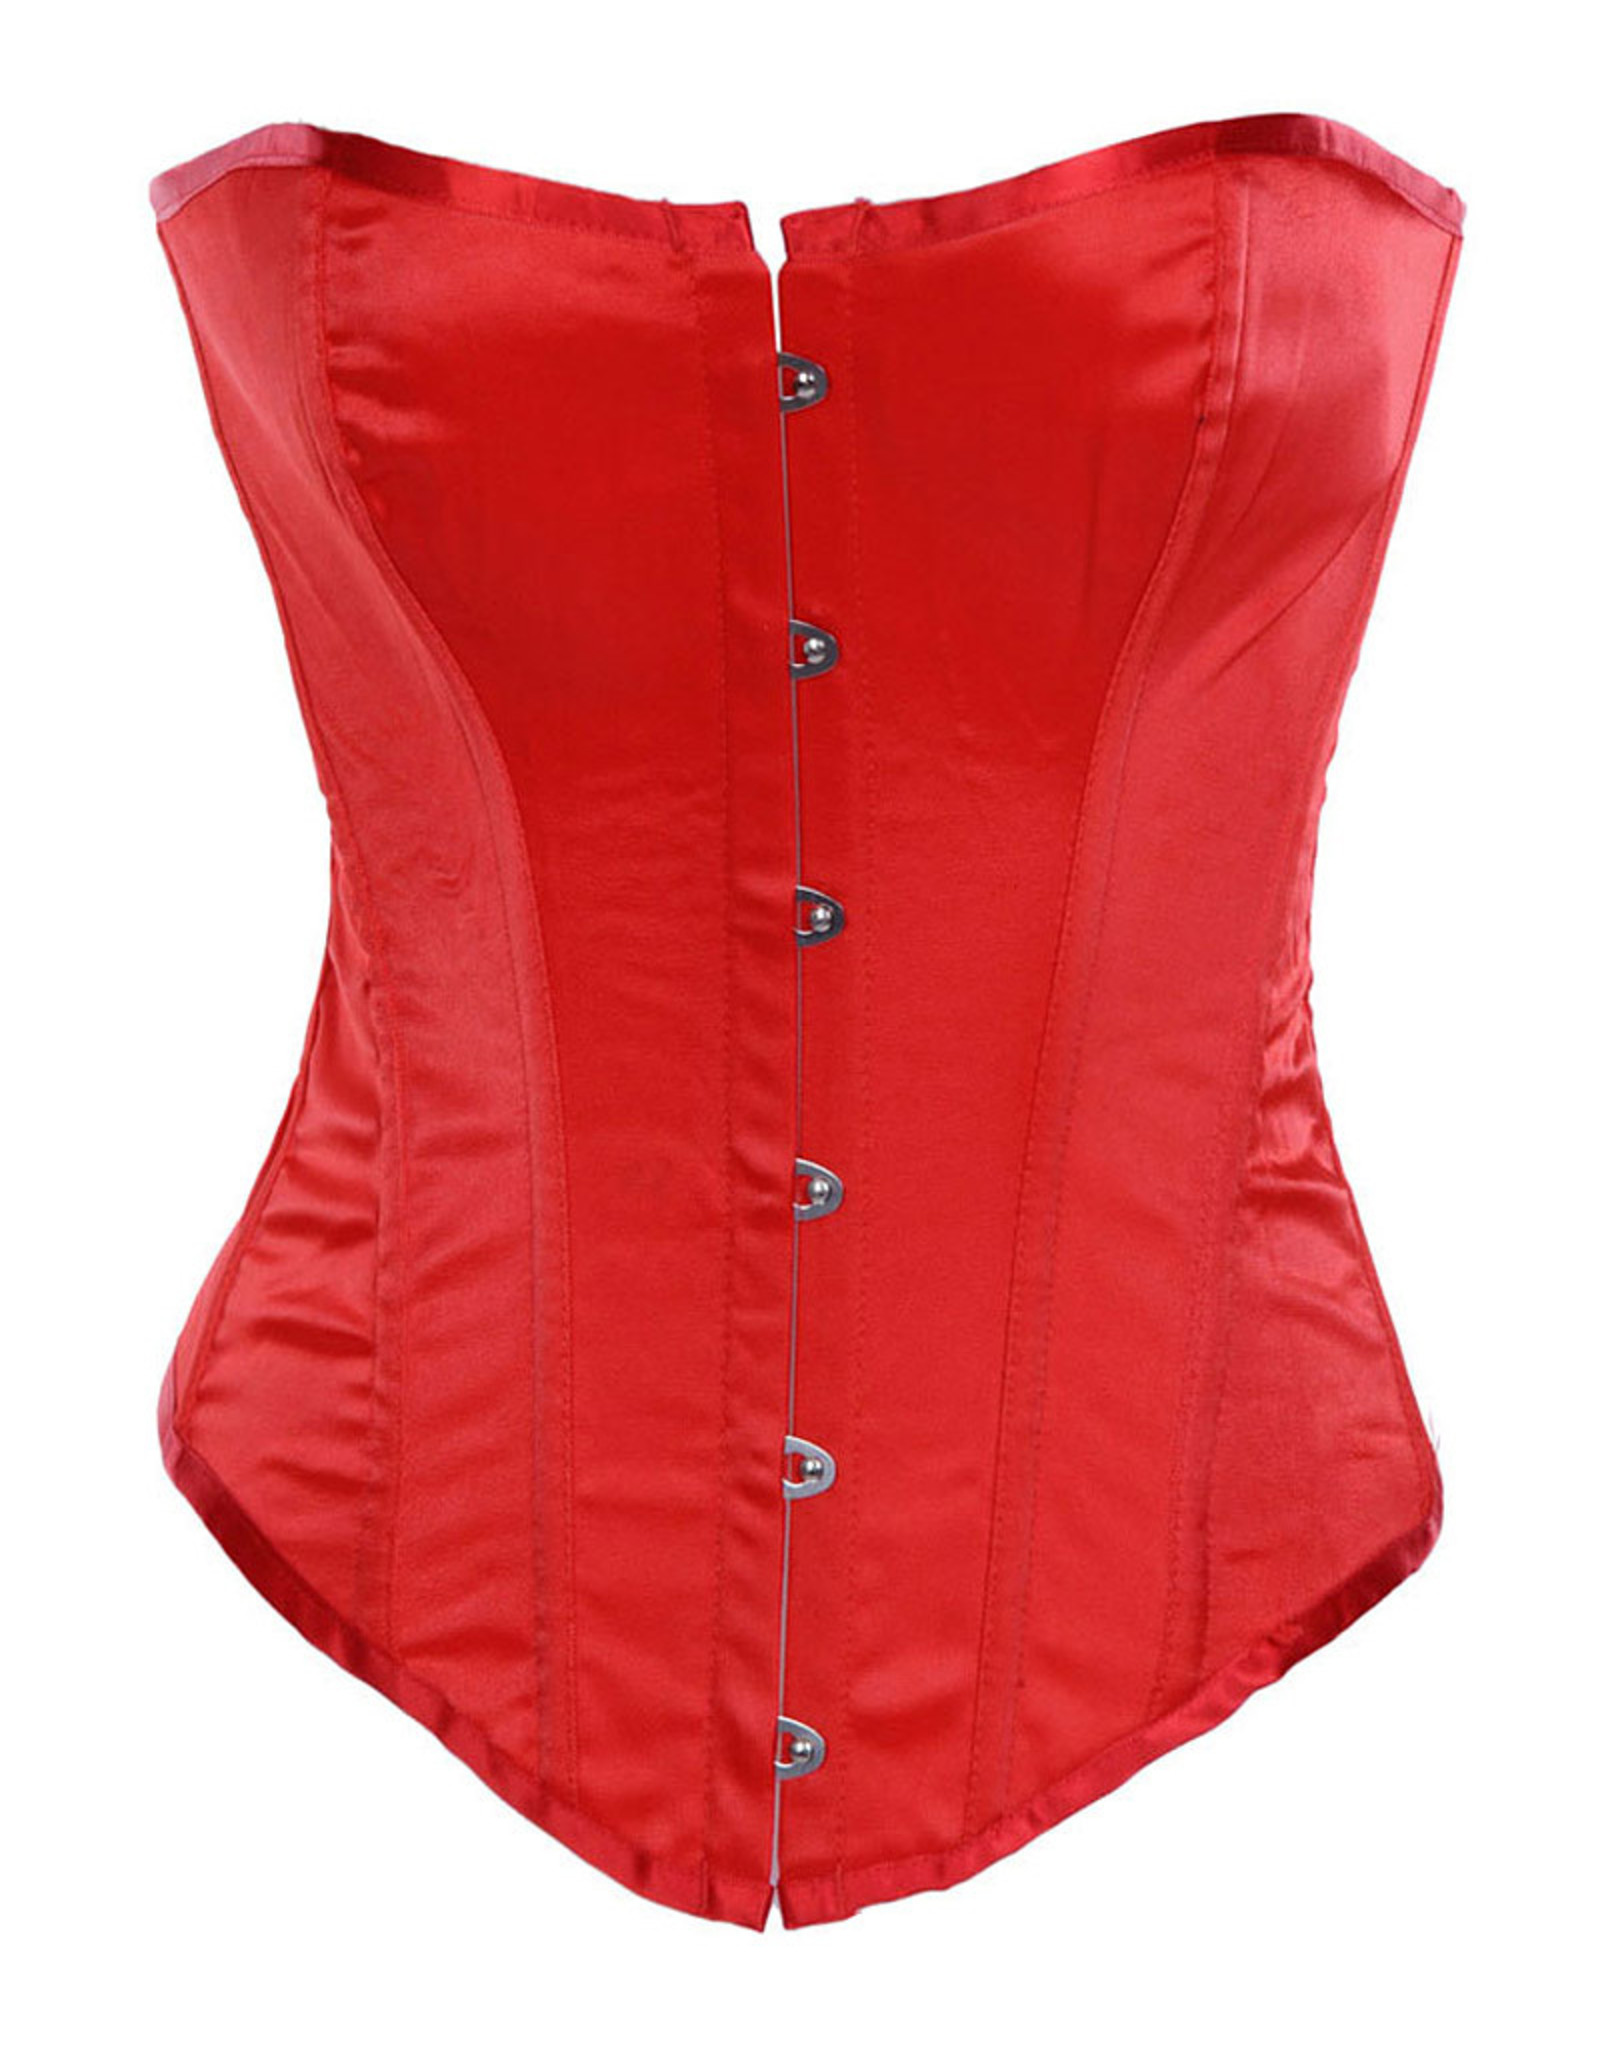 CLASSIC OVERBUST CORSET RED SMALL